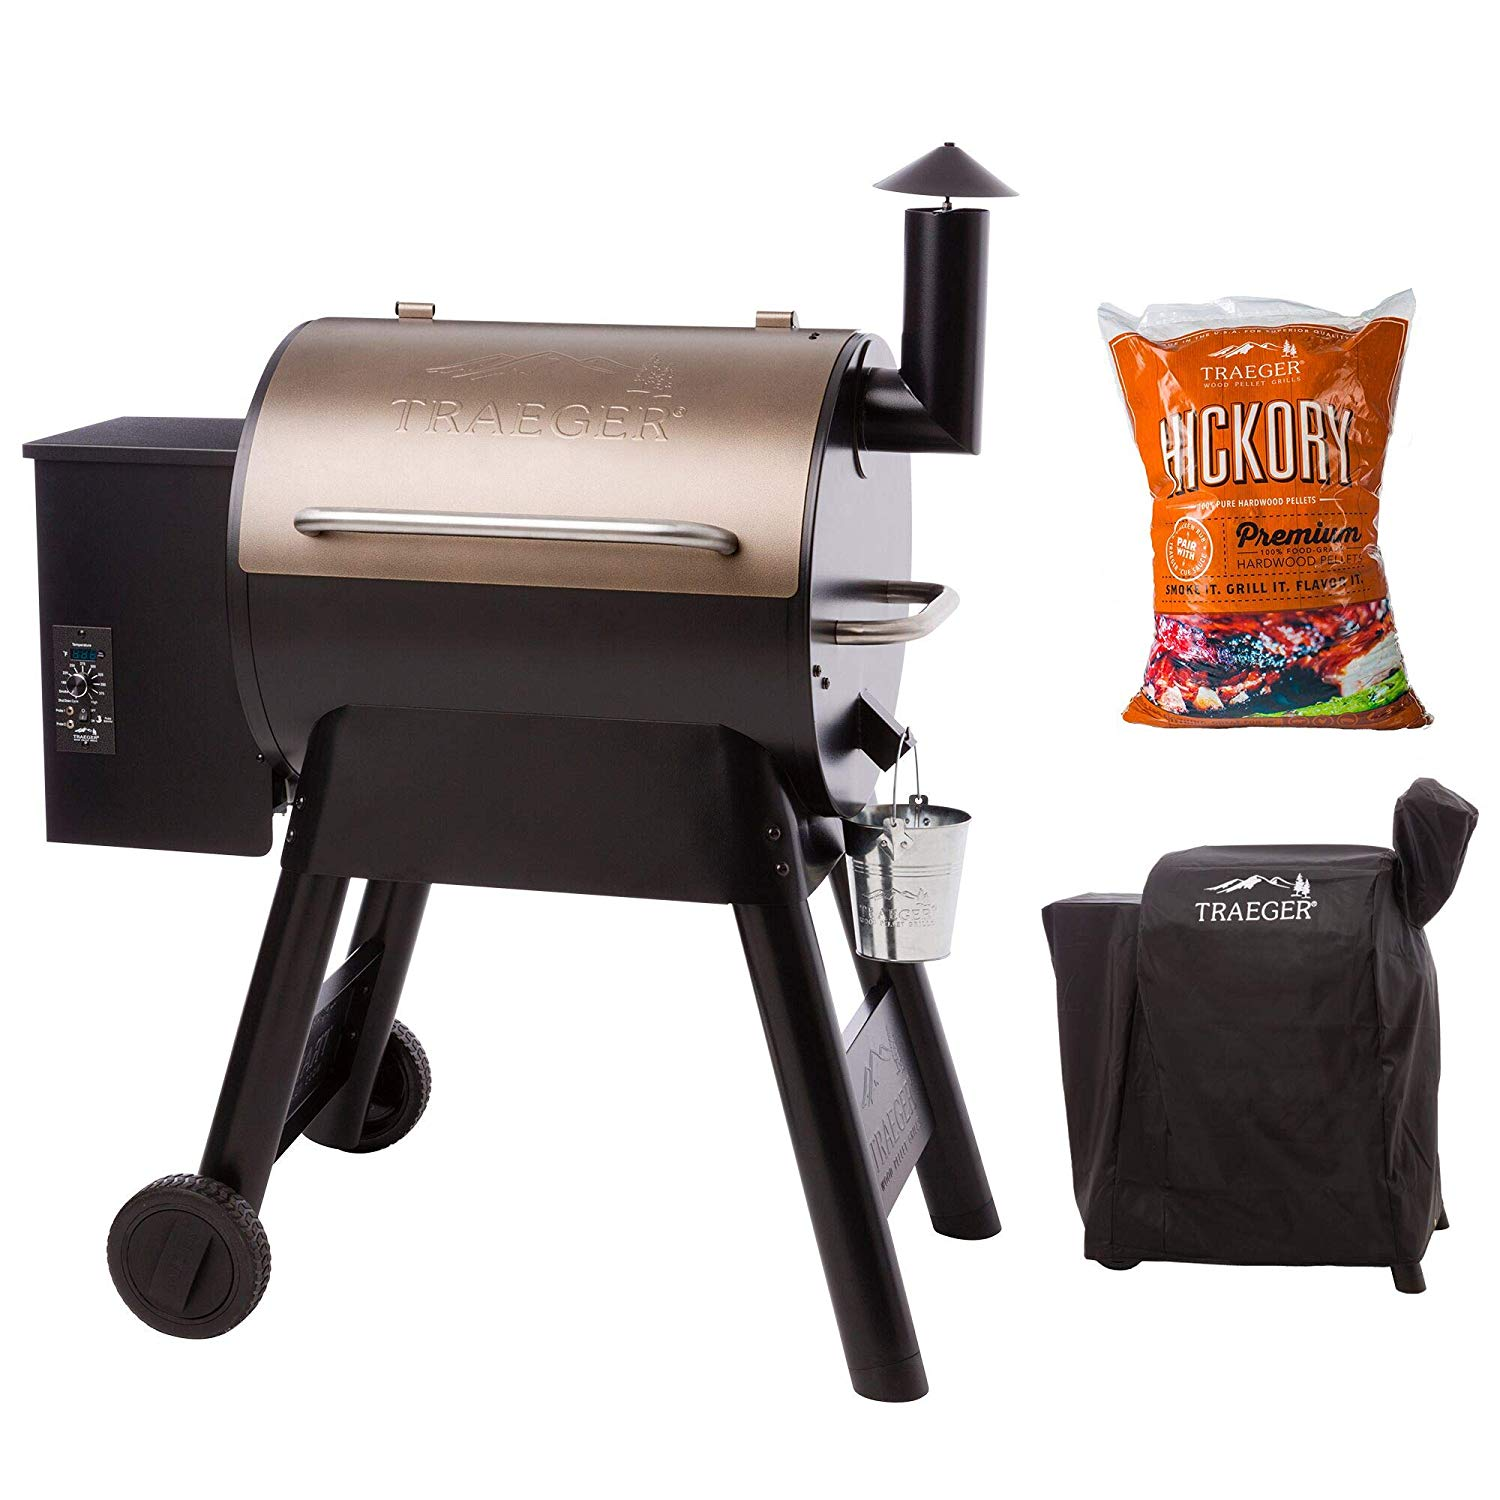 Traeger Pro 22 Series Pellet Grill and Smoker w/ Cover and Pellets